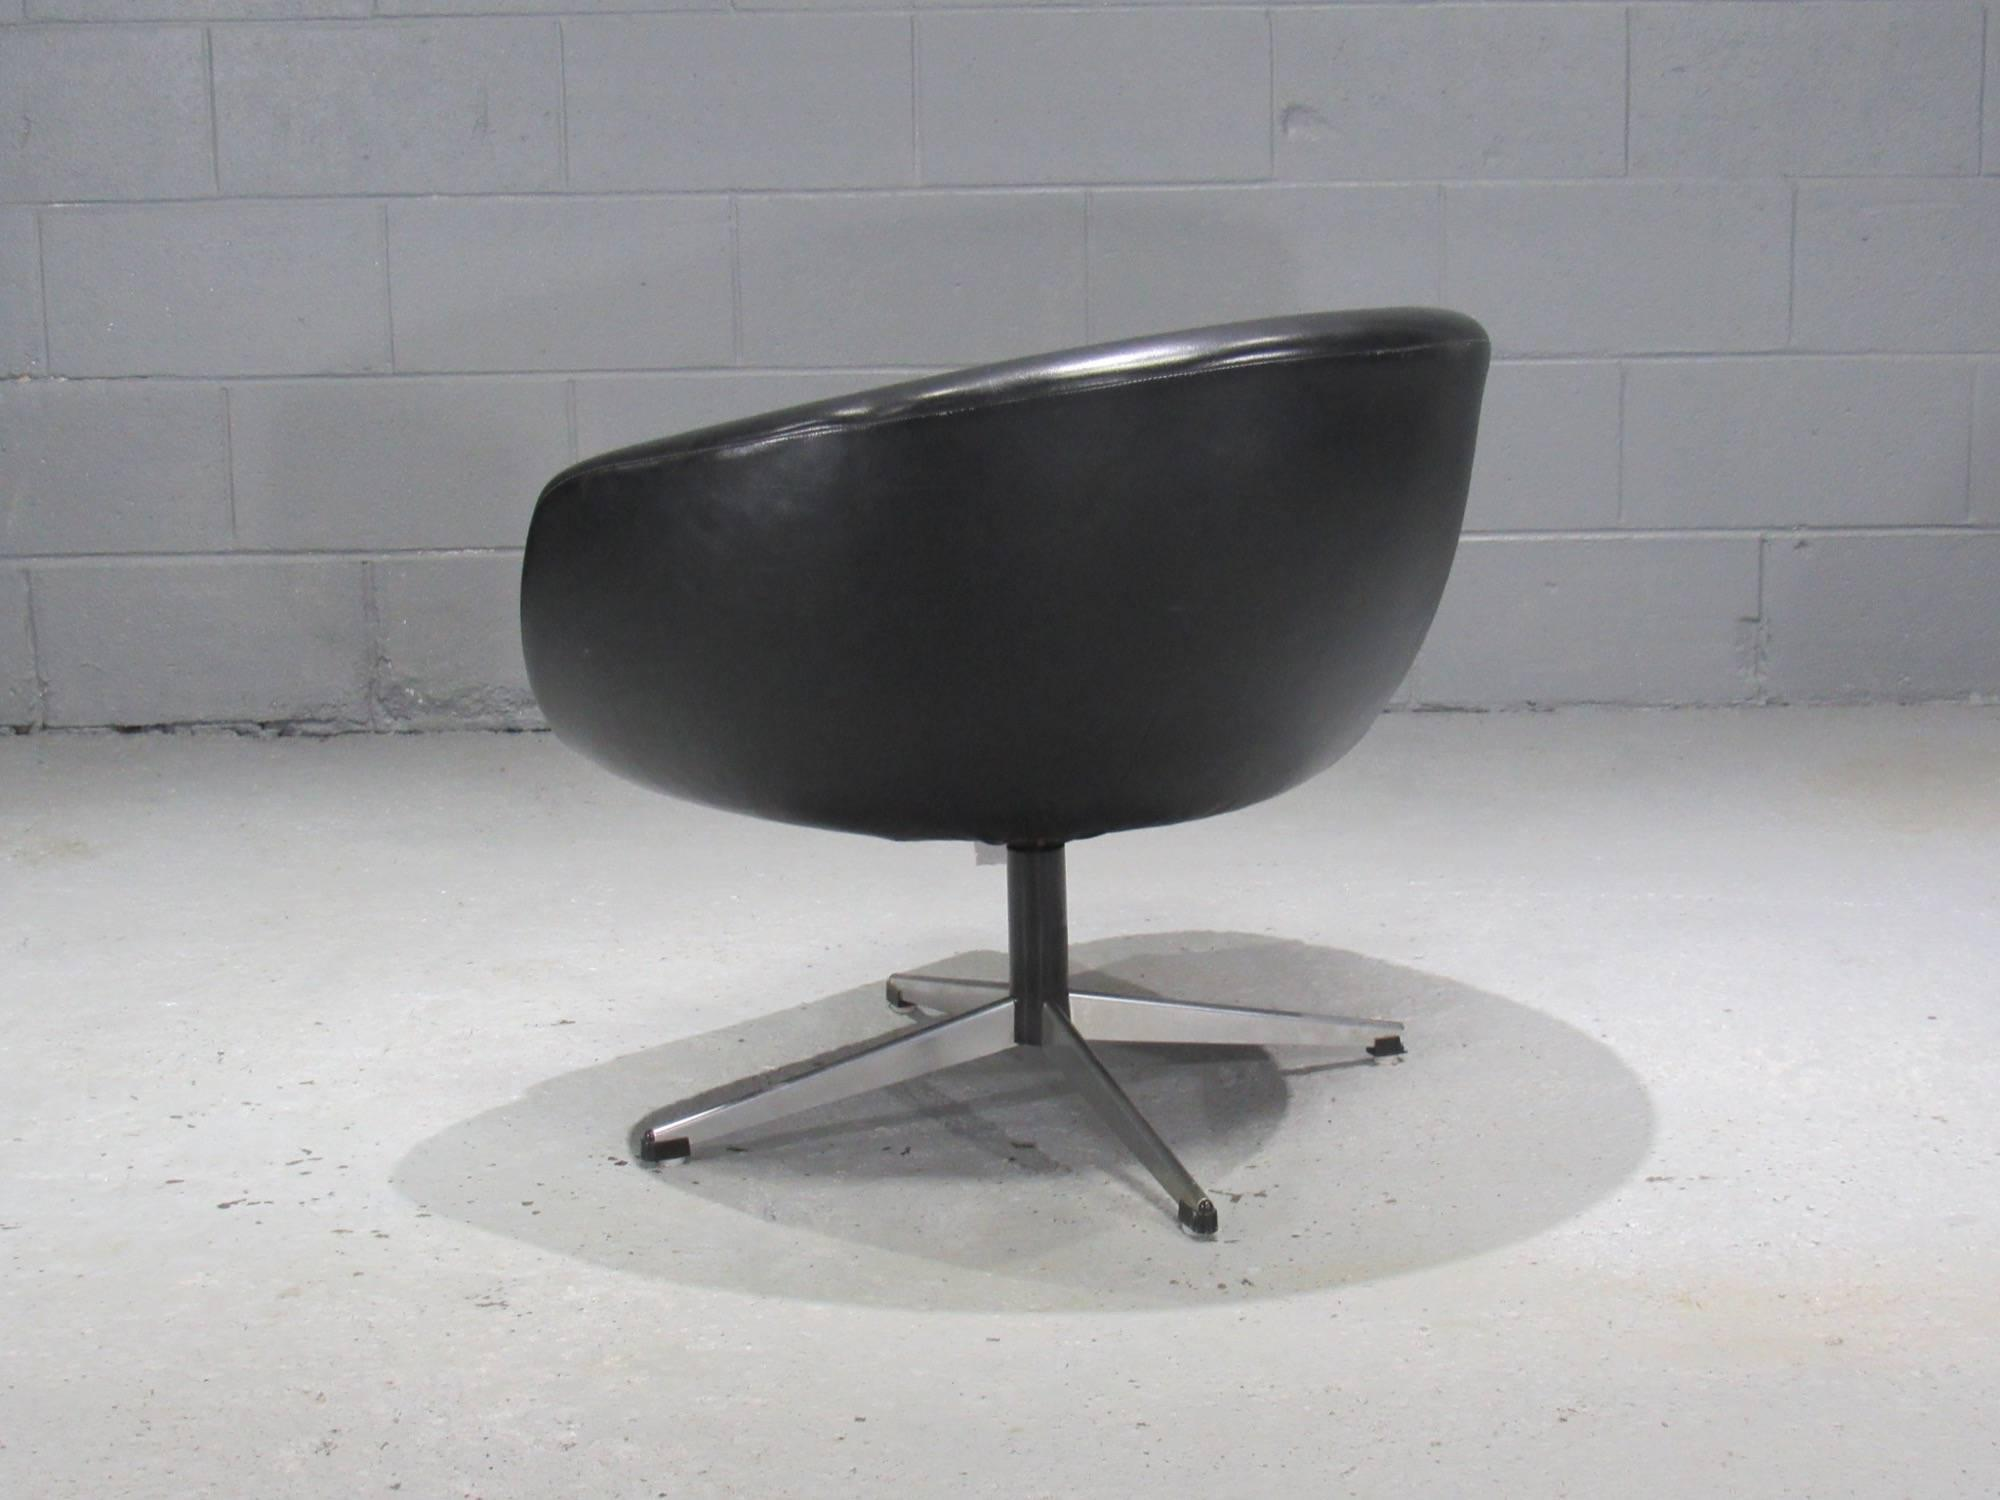 swivel pod chair restaurant chairs wholesale superb black by overman decaso sweden for sale image 4 of 6